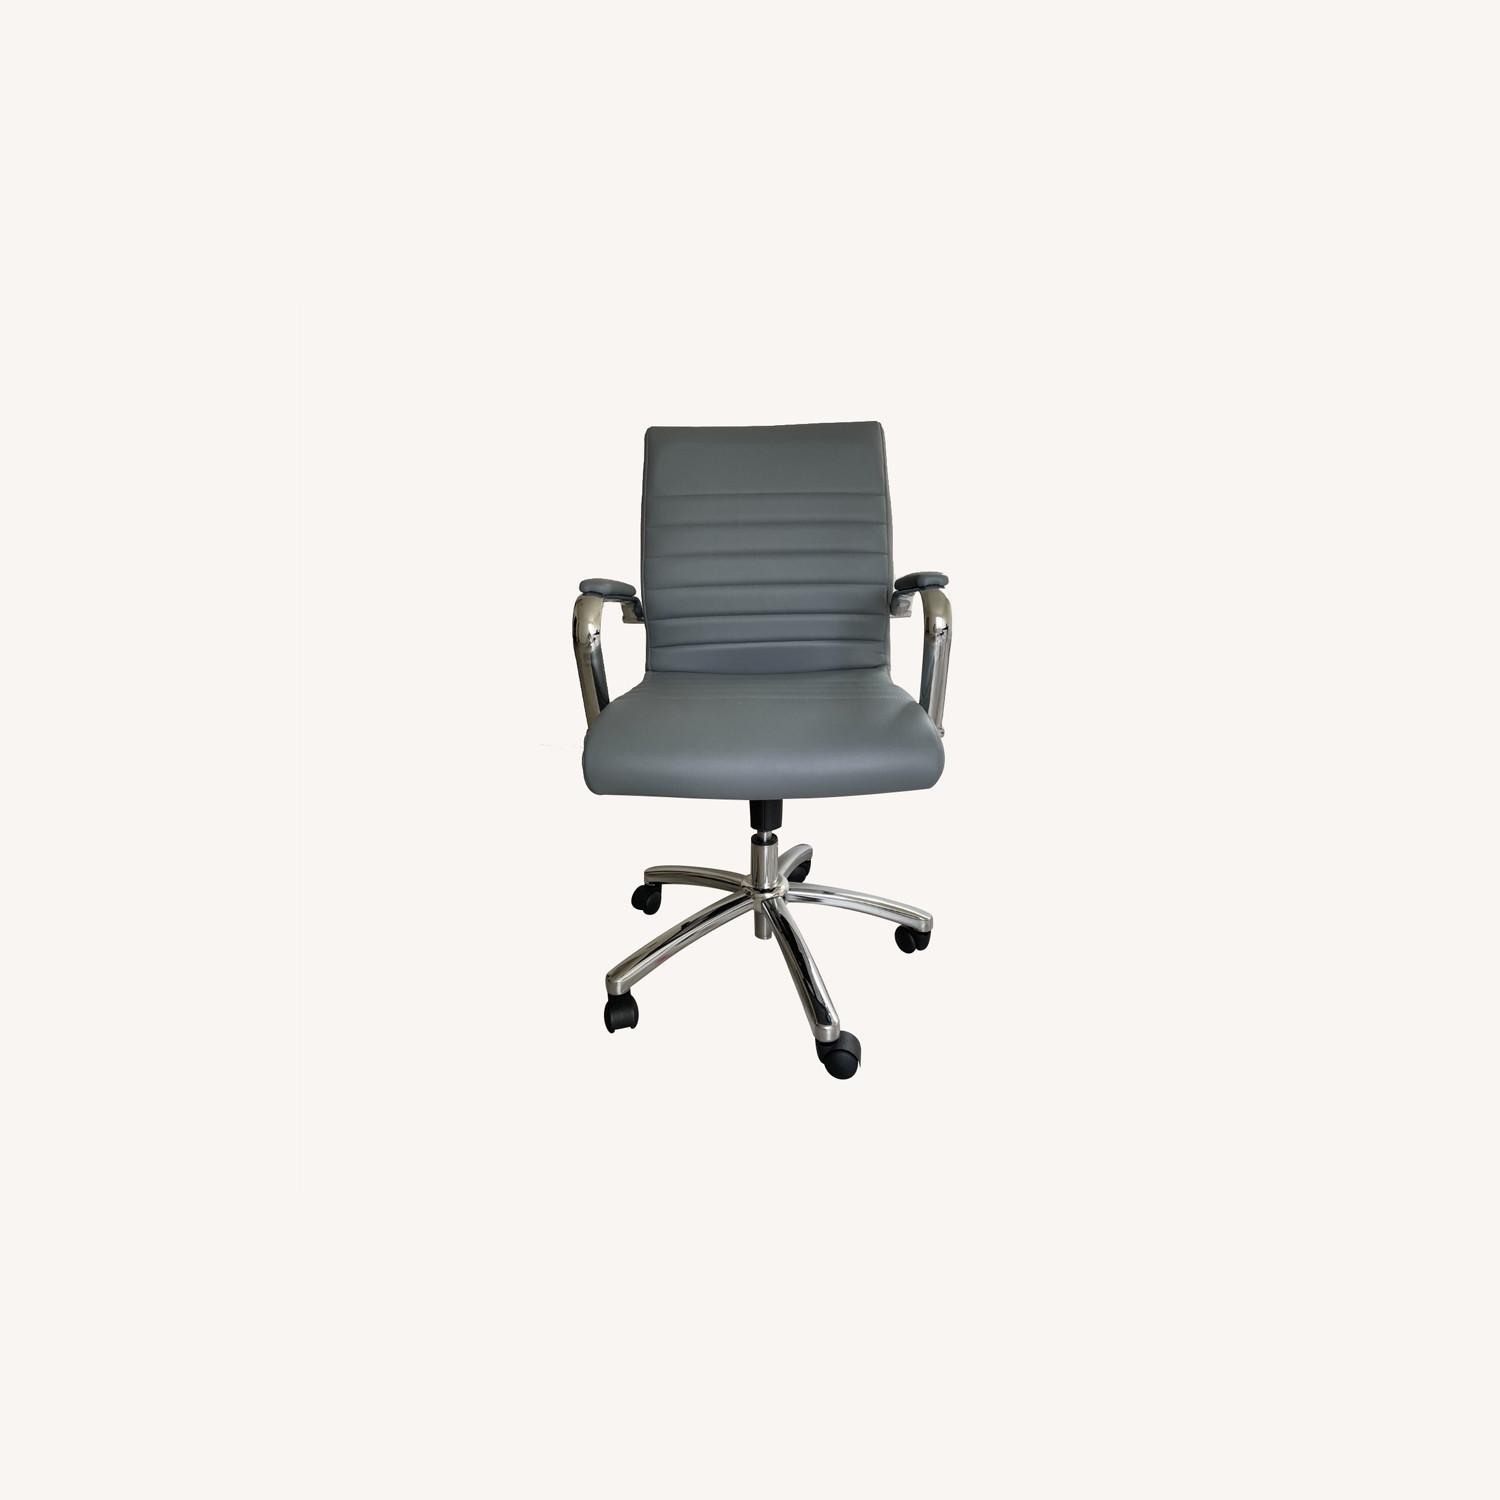 Office Depot Realspace Modern Chair Grey/Chrome - image-0